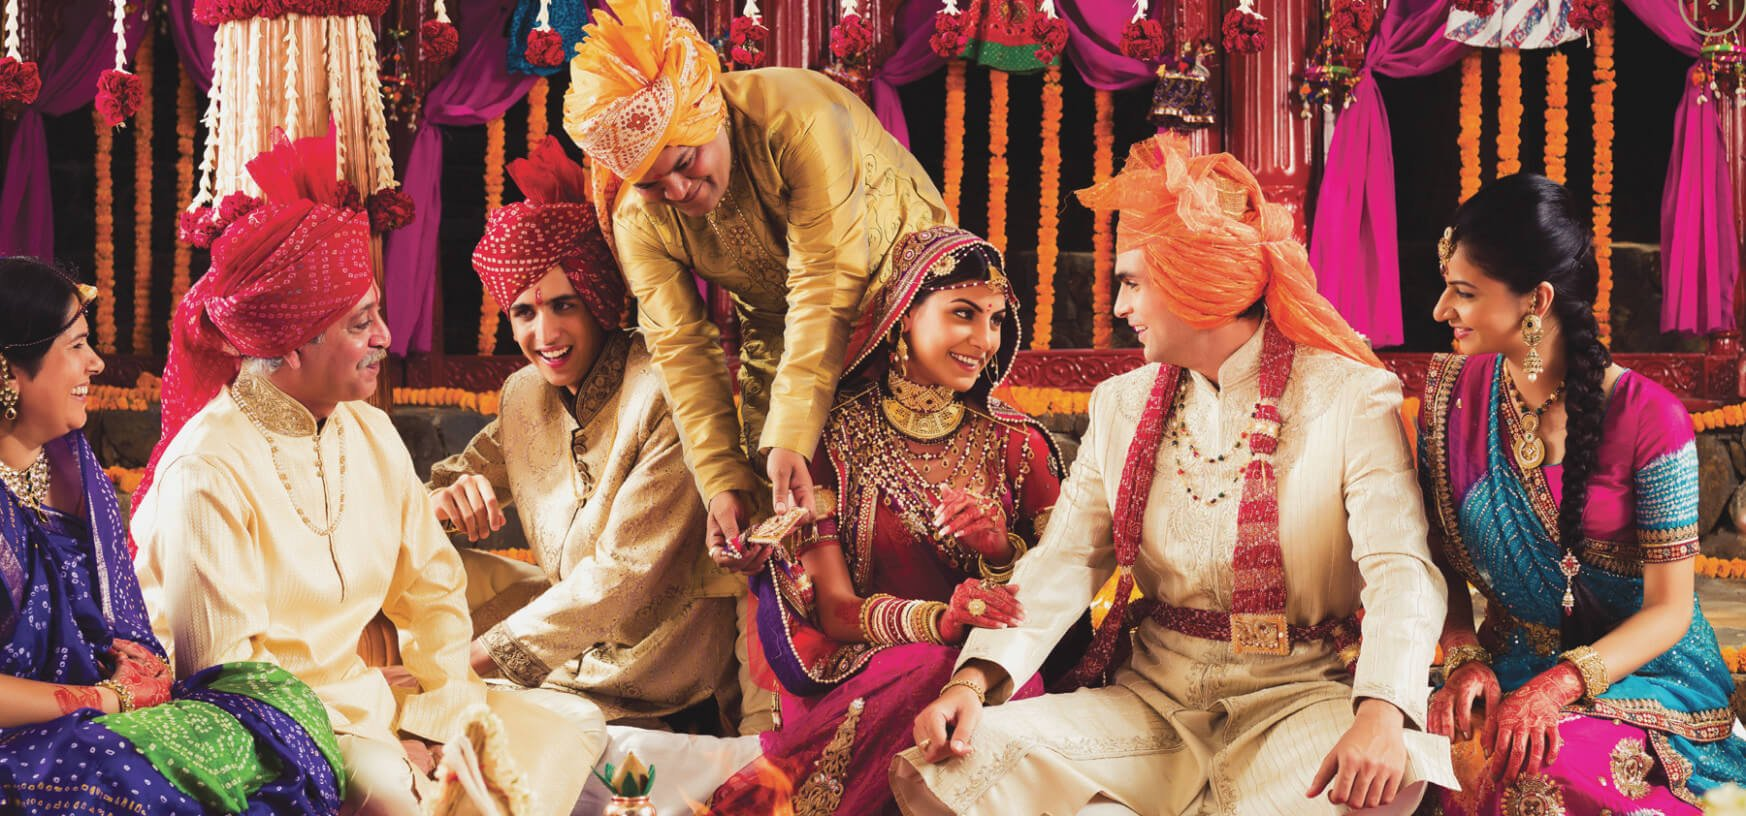 10 Riveting Rajasthani Wedding Traditions That Are Gist of A Royal Rajasthani Wedding